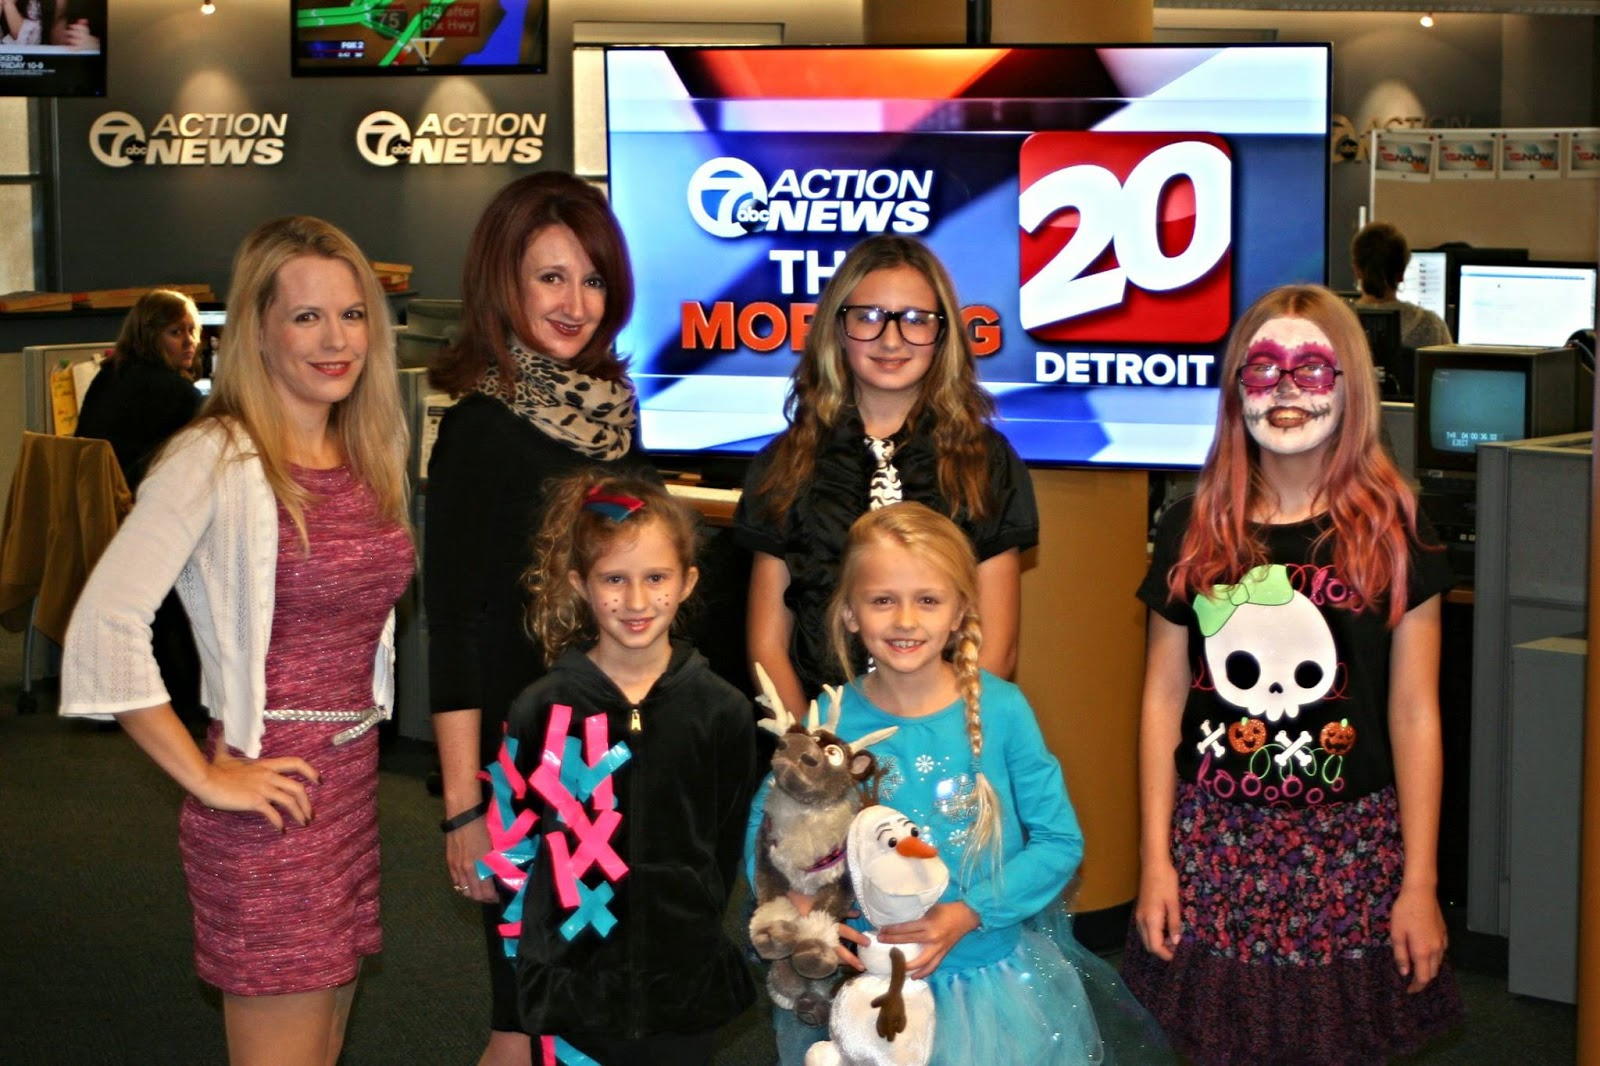 TV20, Channel 7, News, Detroit, DIY, costumes, Halloween